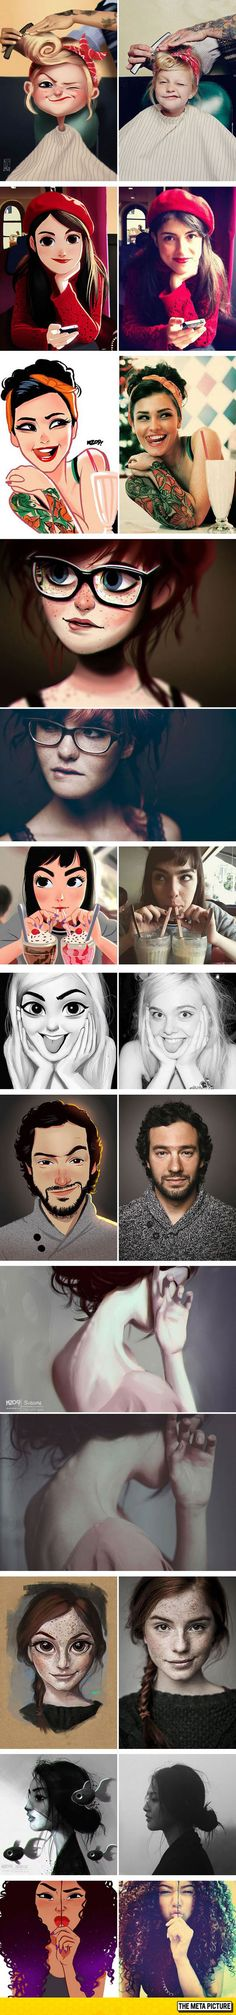 Artist Turns Photos Of Random People Into Fun Illustrations. I want this done :)                                                                                                                                                     More